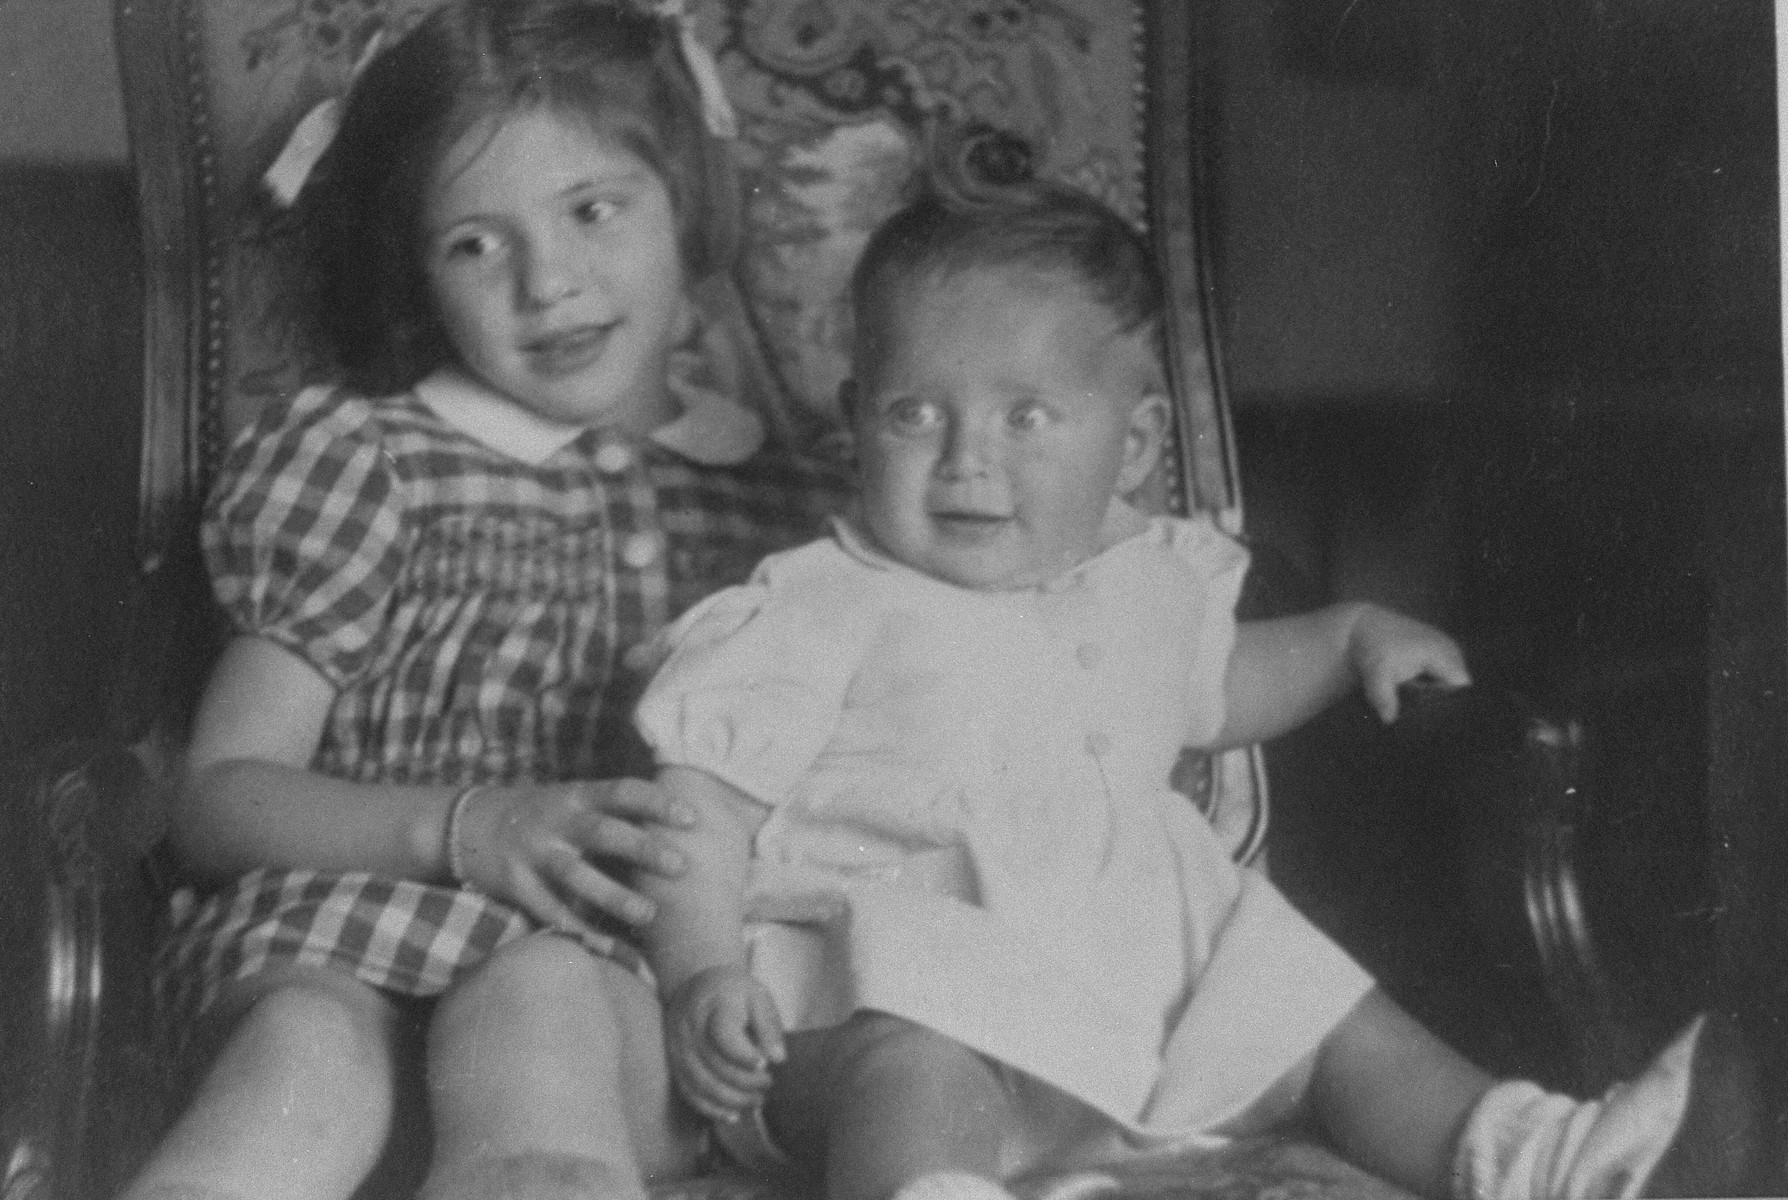 Marguerite-Rose Birnbaum (right) shares a chair with Marie-Ghislain Dincq, the daughter of her rescuer, Marie-Josephe Dincq.